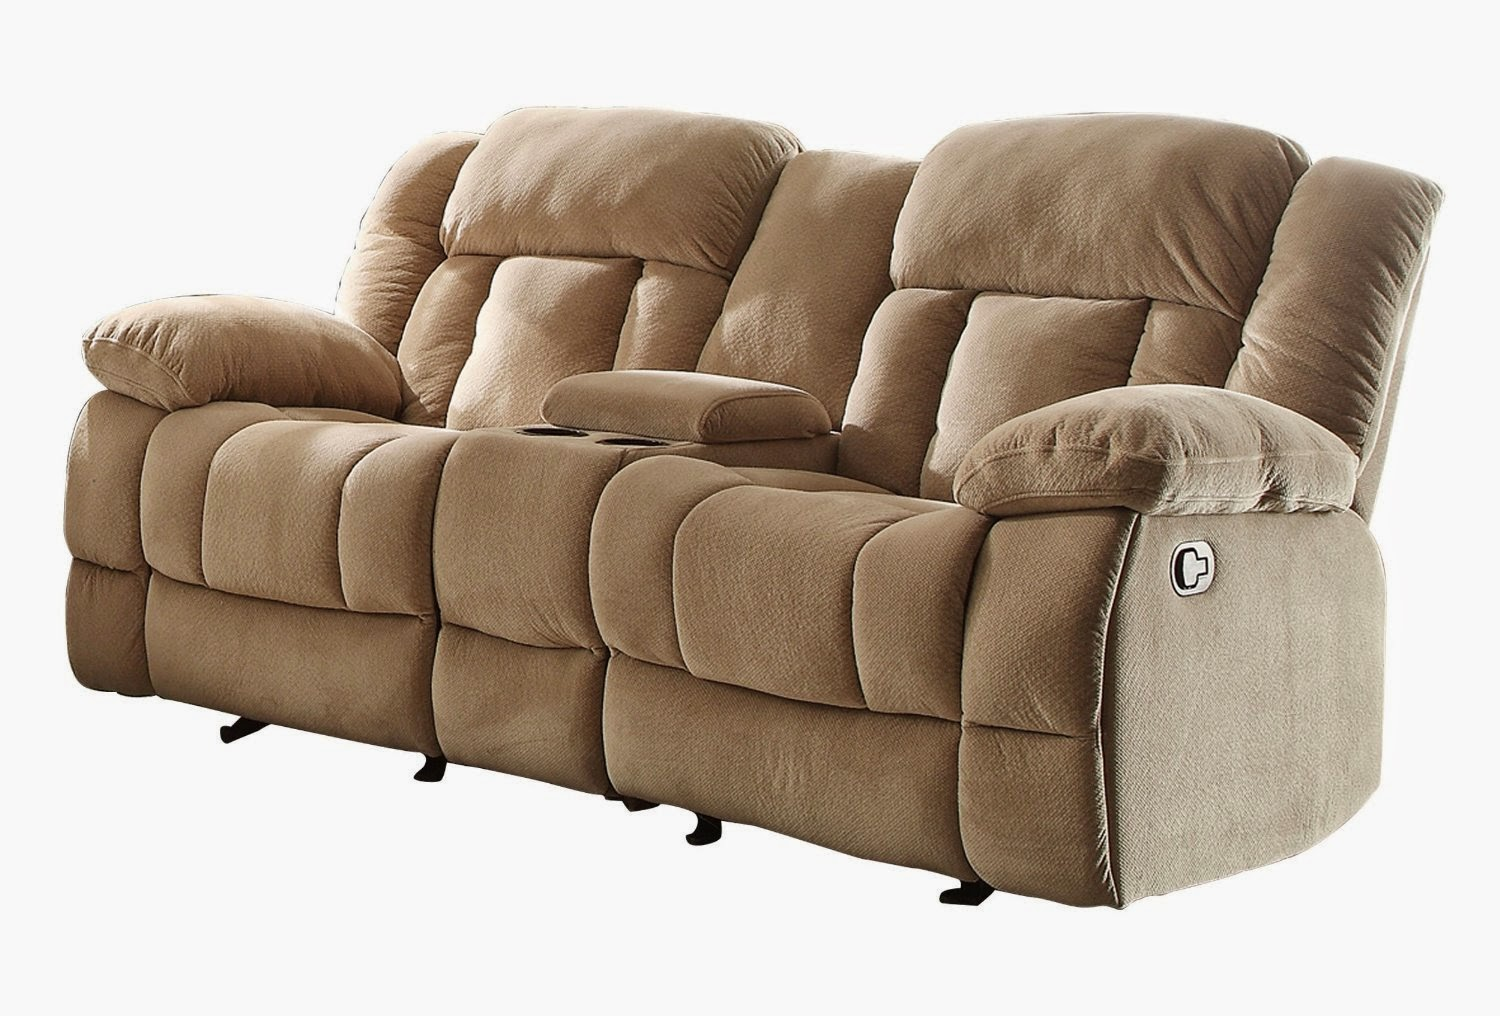 Reclining loveseat sale reclining sofas and loveseats cheap Couches and loveseats